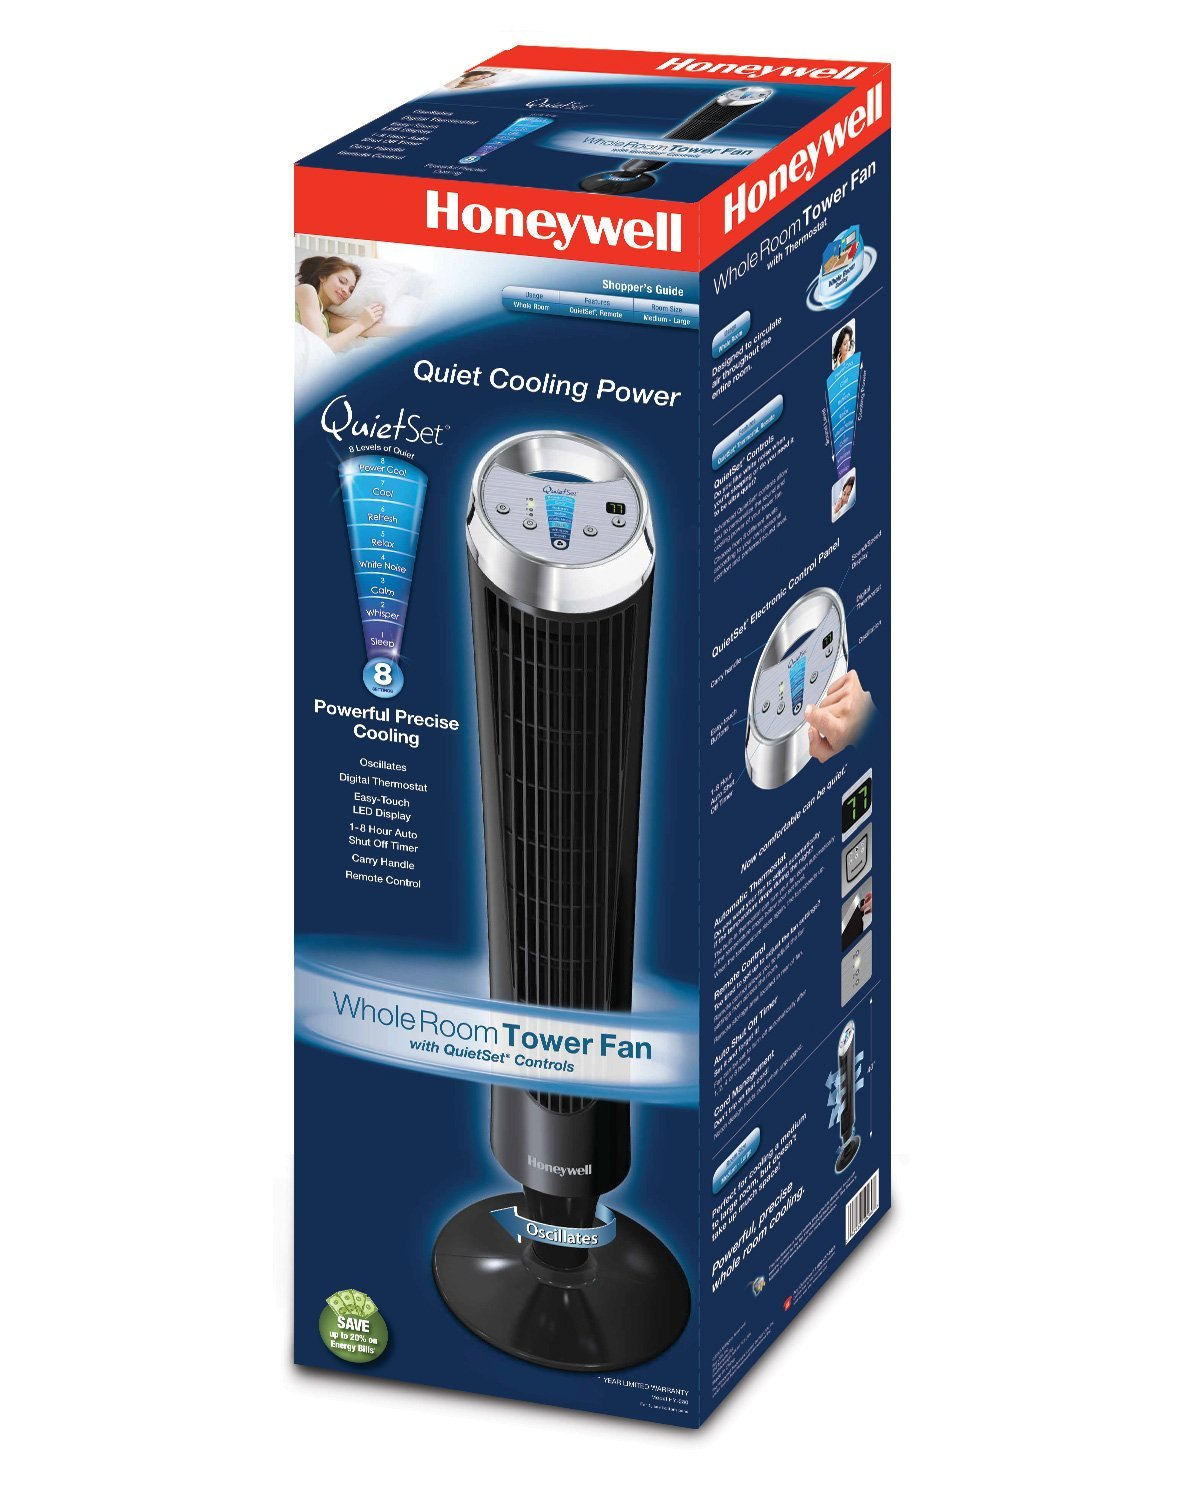 The Honeywell Hy 280 Quietset Whole Room Tower Fan Black